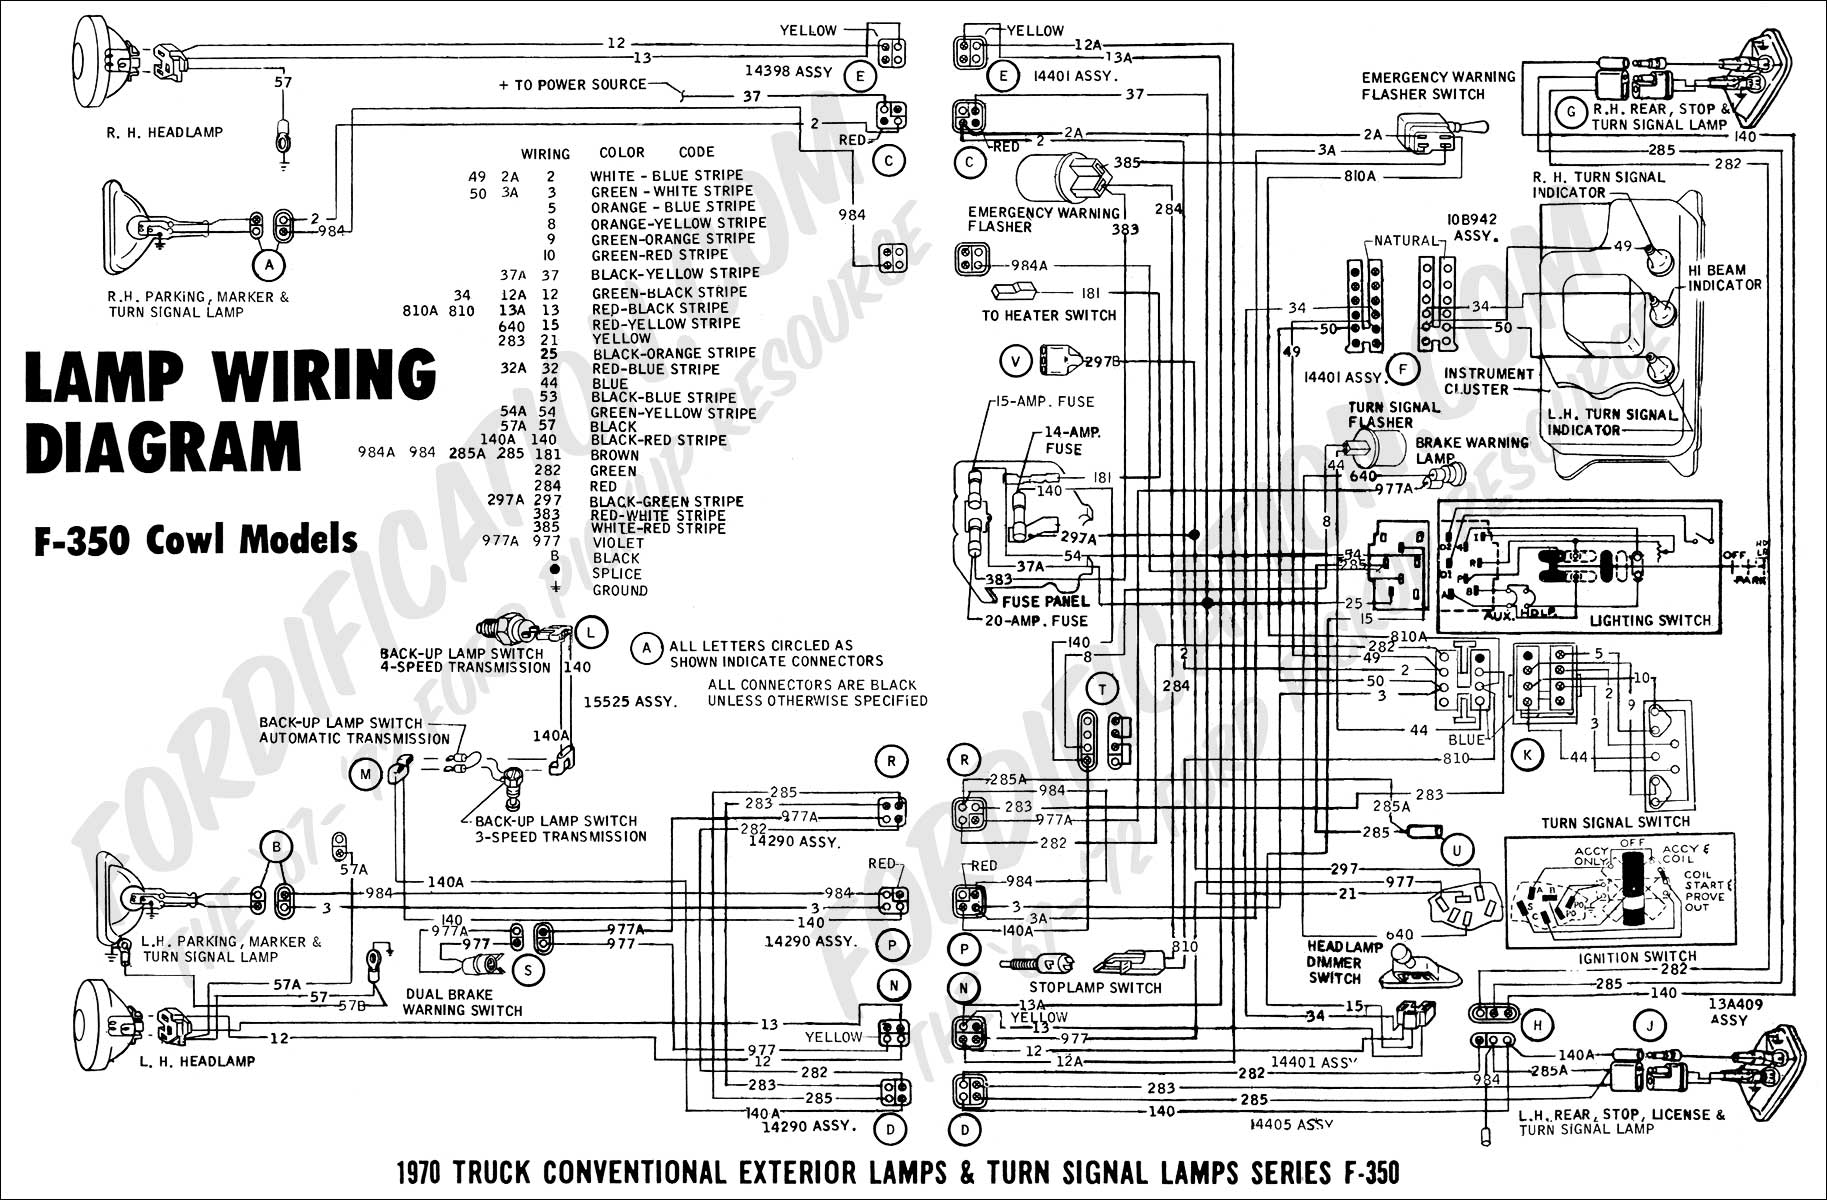 wiring diagram 70F350cowl_lights01 wiring diagram for 29 ford model a readingrat net ford car wiring diagrams at panicattacktreatment.co